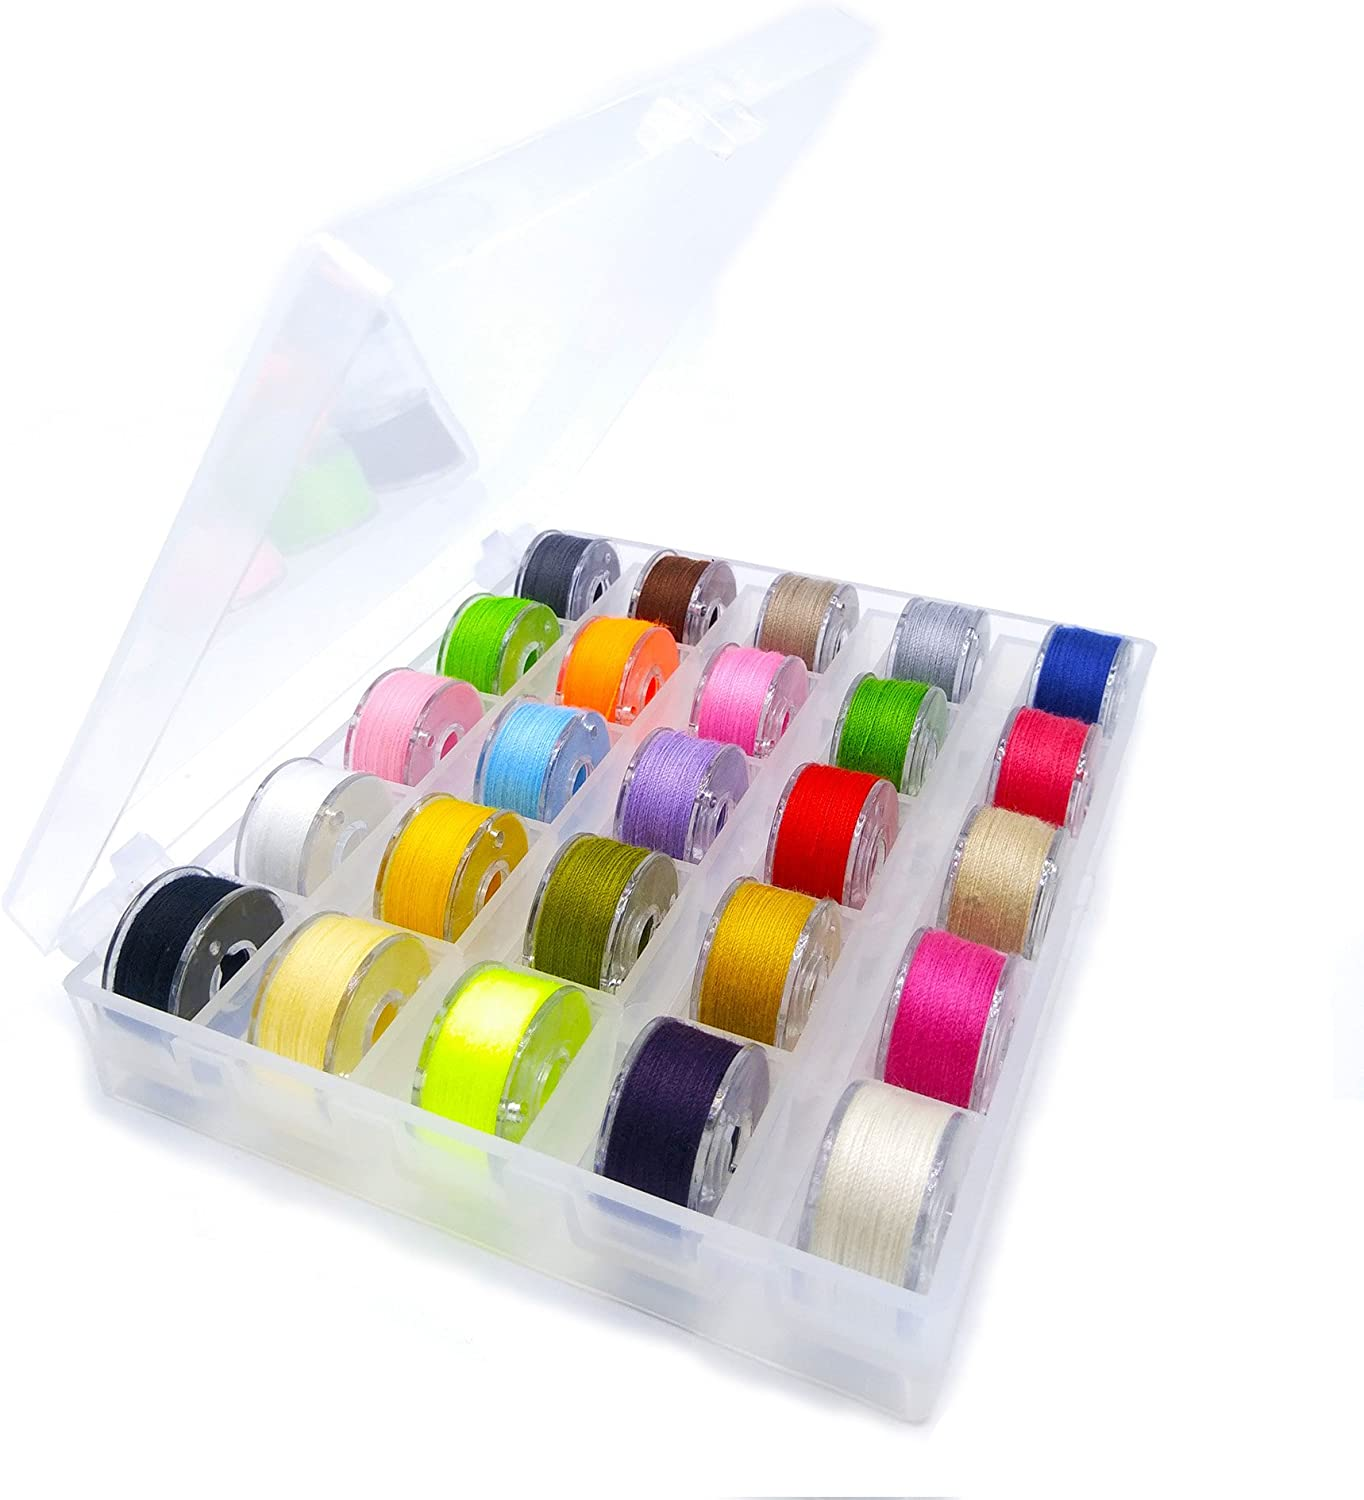 25 Pcs Plastic Sewing Machine Bobbins Transparent with Case and Measuring Tape for Brother Singer Janome Juki Kenmore